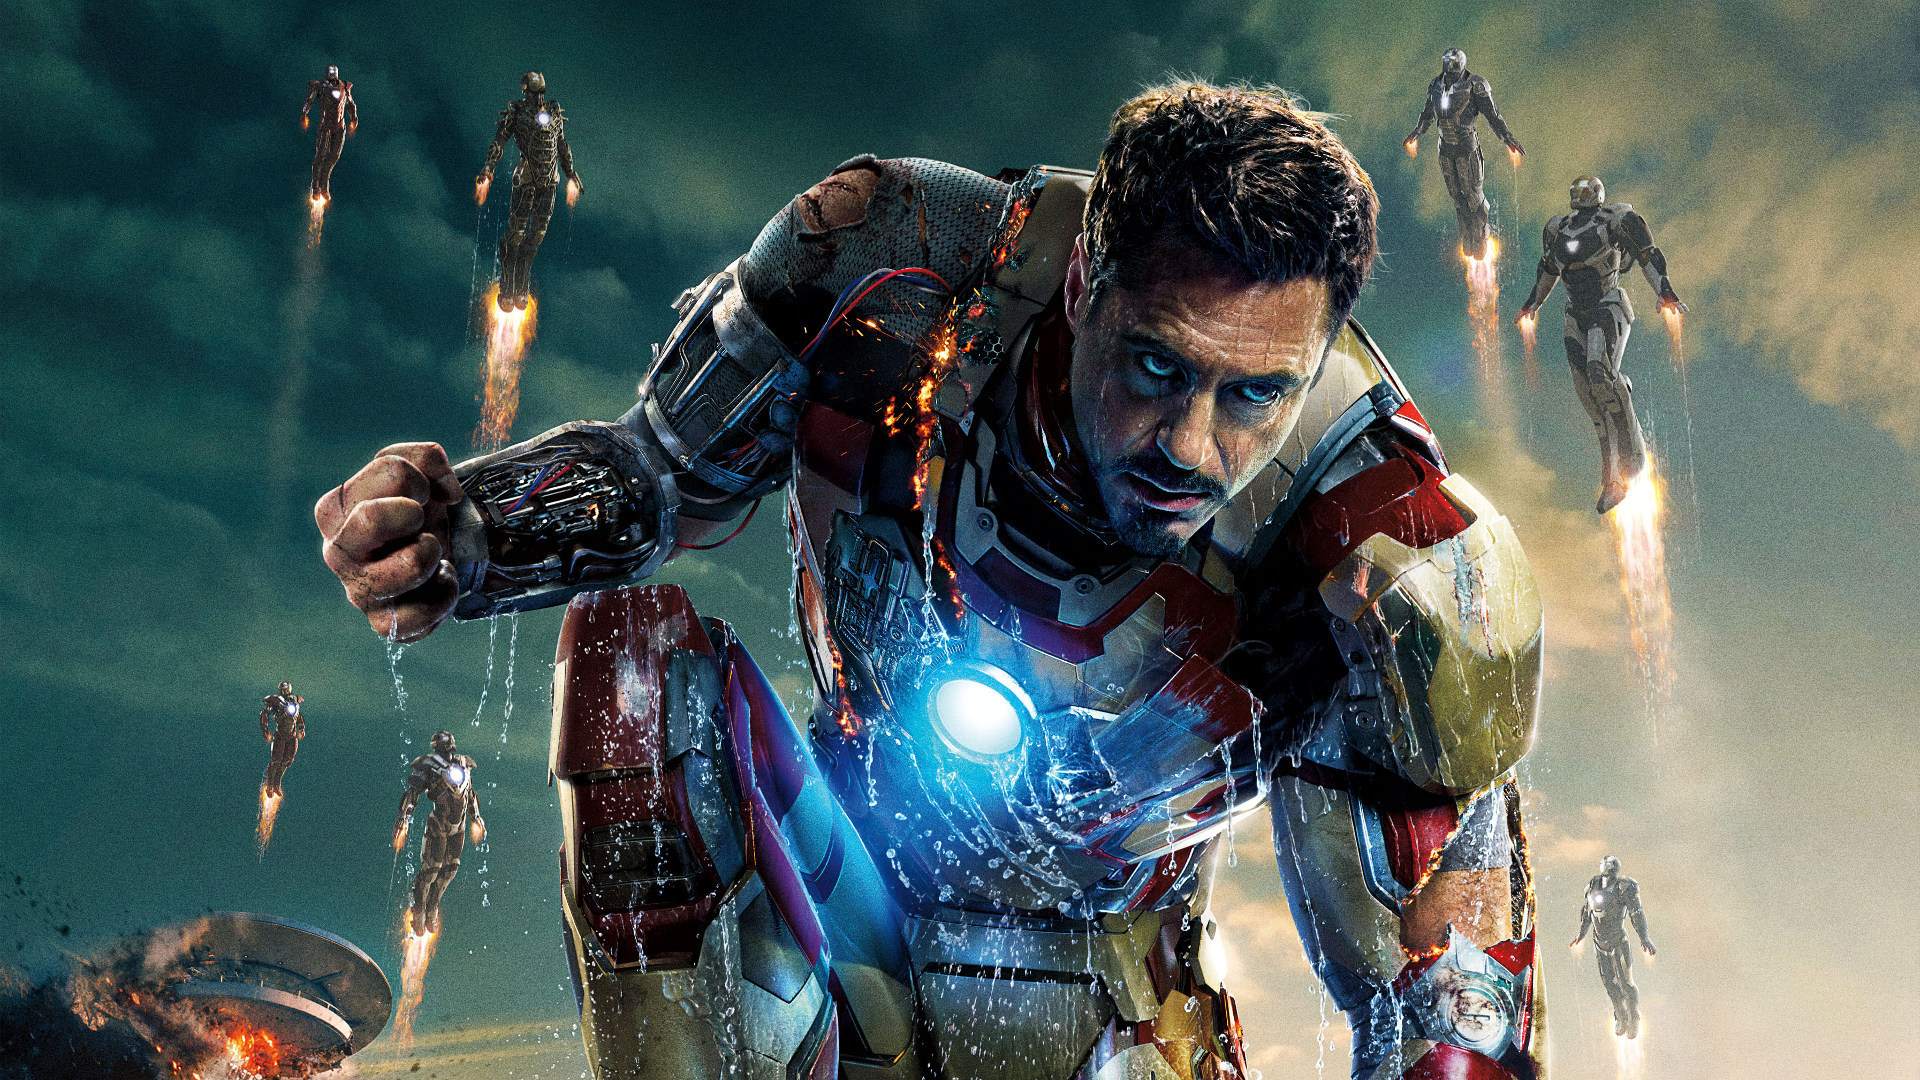 iron man 3 2013 an all thumbs review